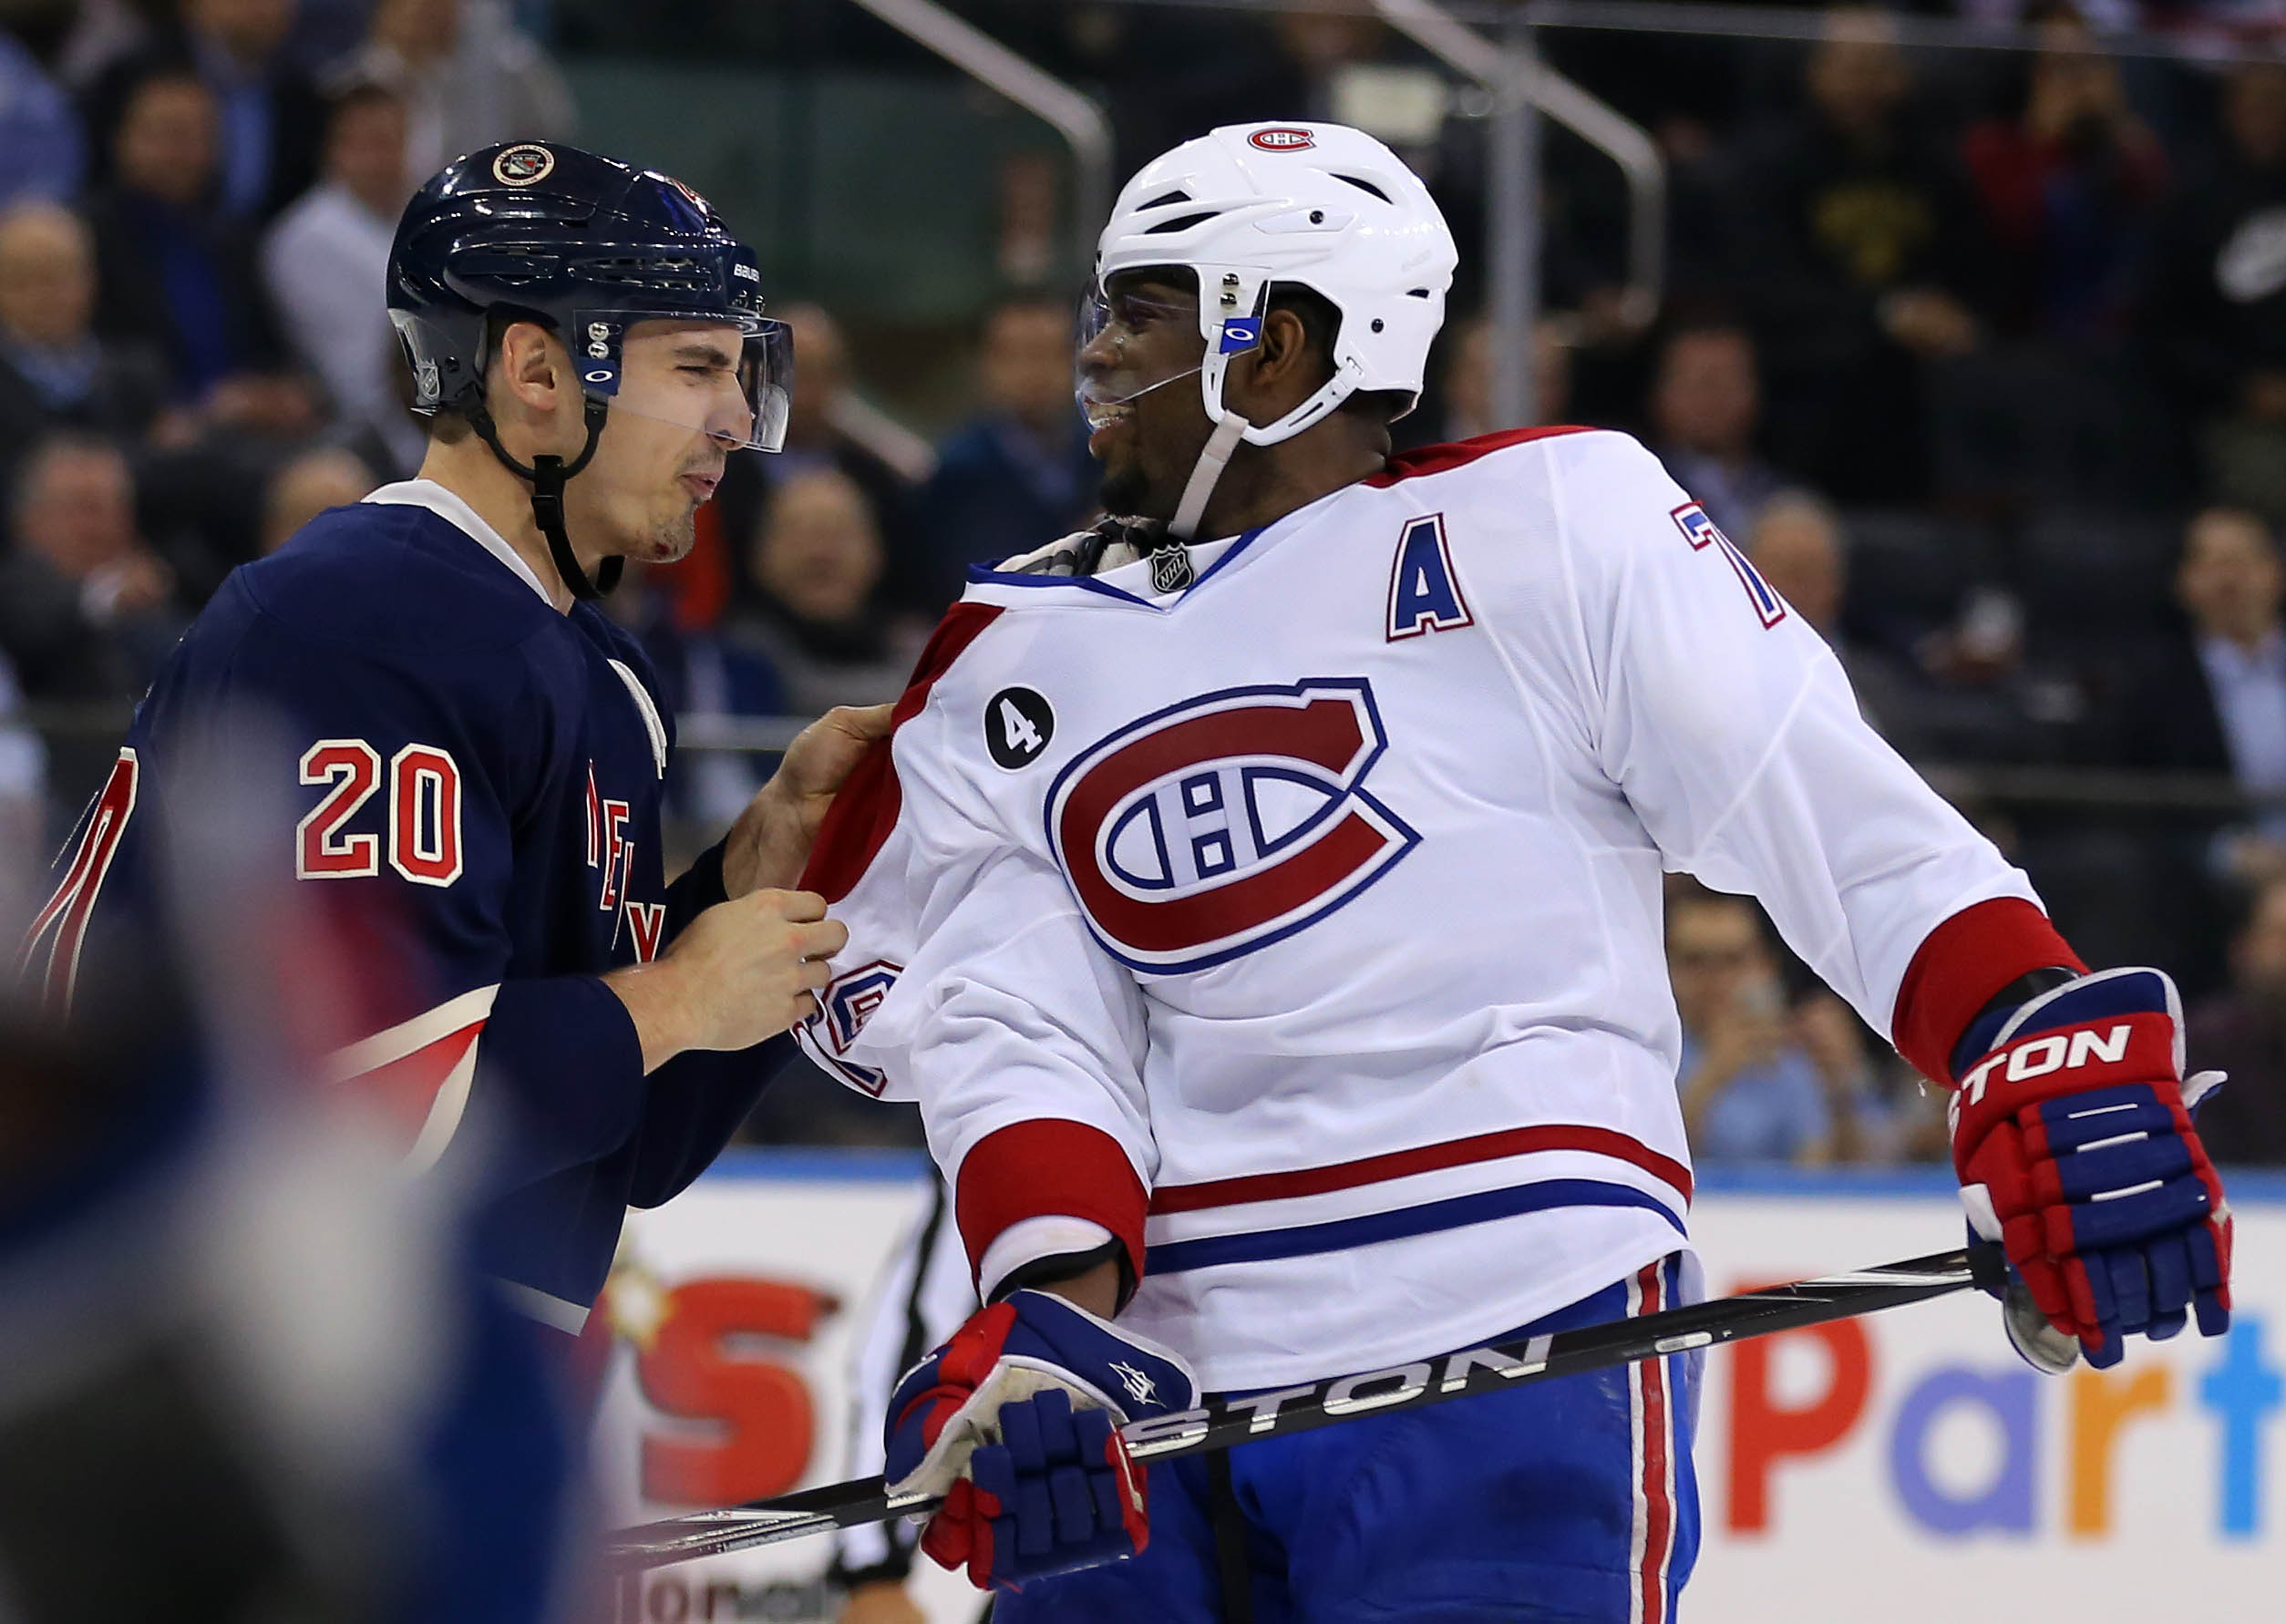 Preview the East s Elite Rangers vs Habs